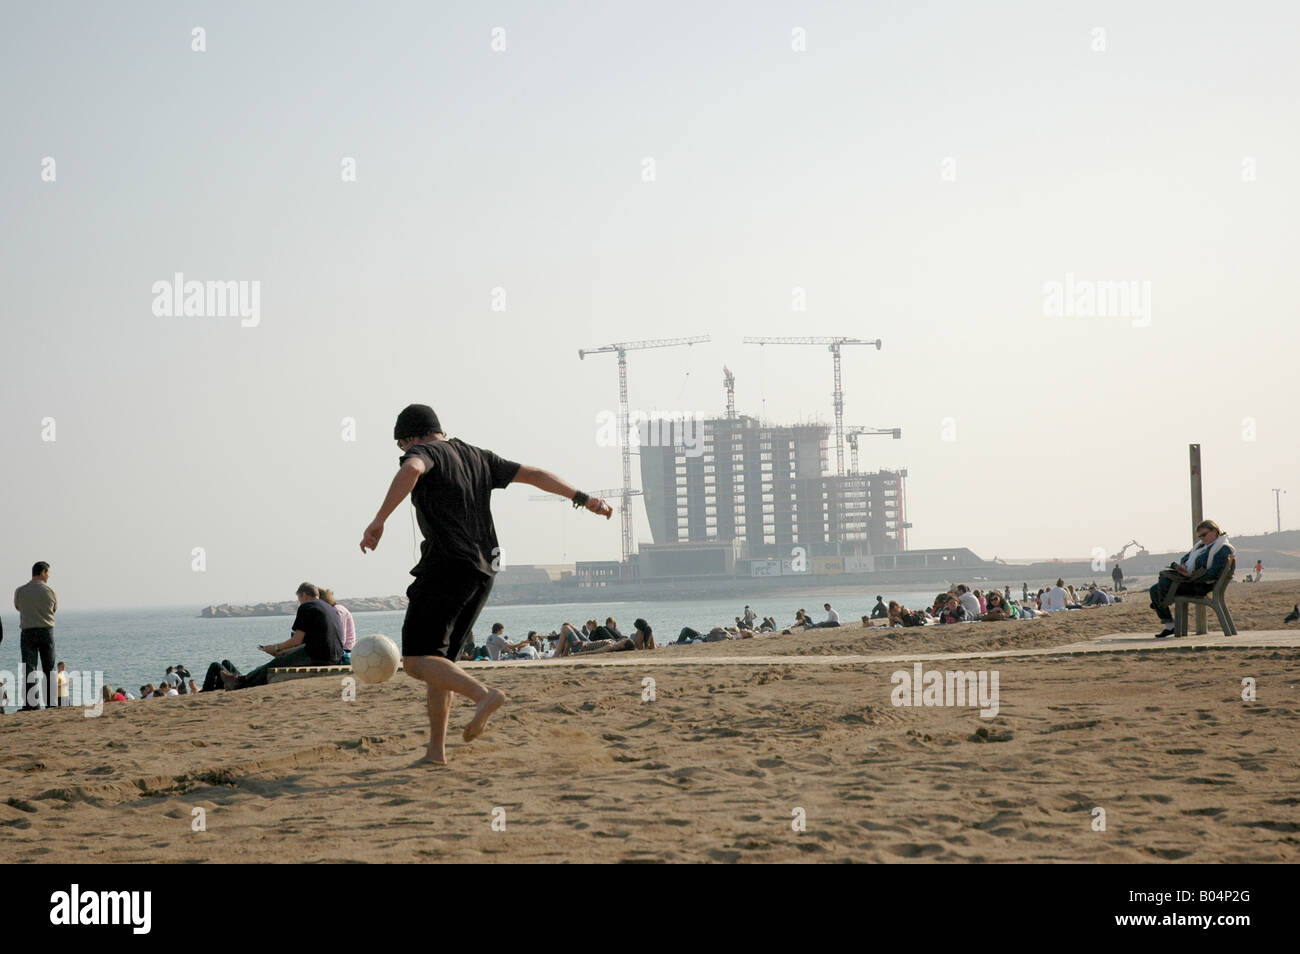 Strand beach sands strand Fussball soccer Spielen game playing play Sport sport Mann man Sand sand - Stock Image